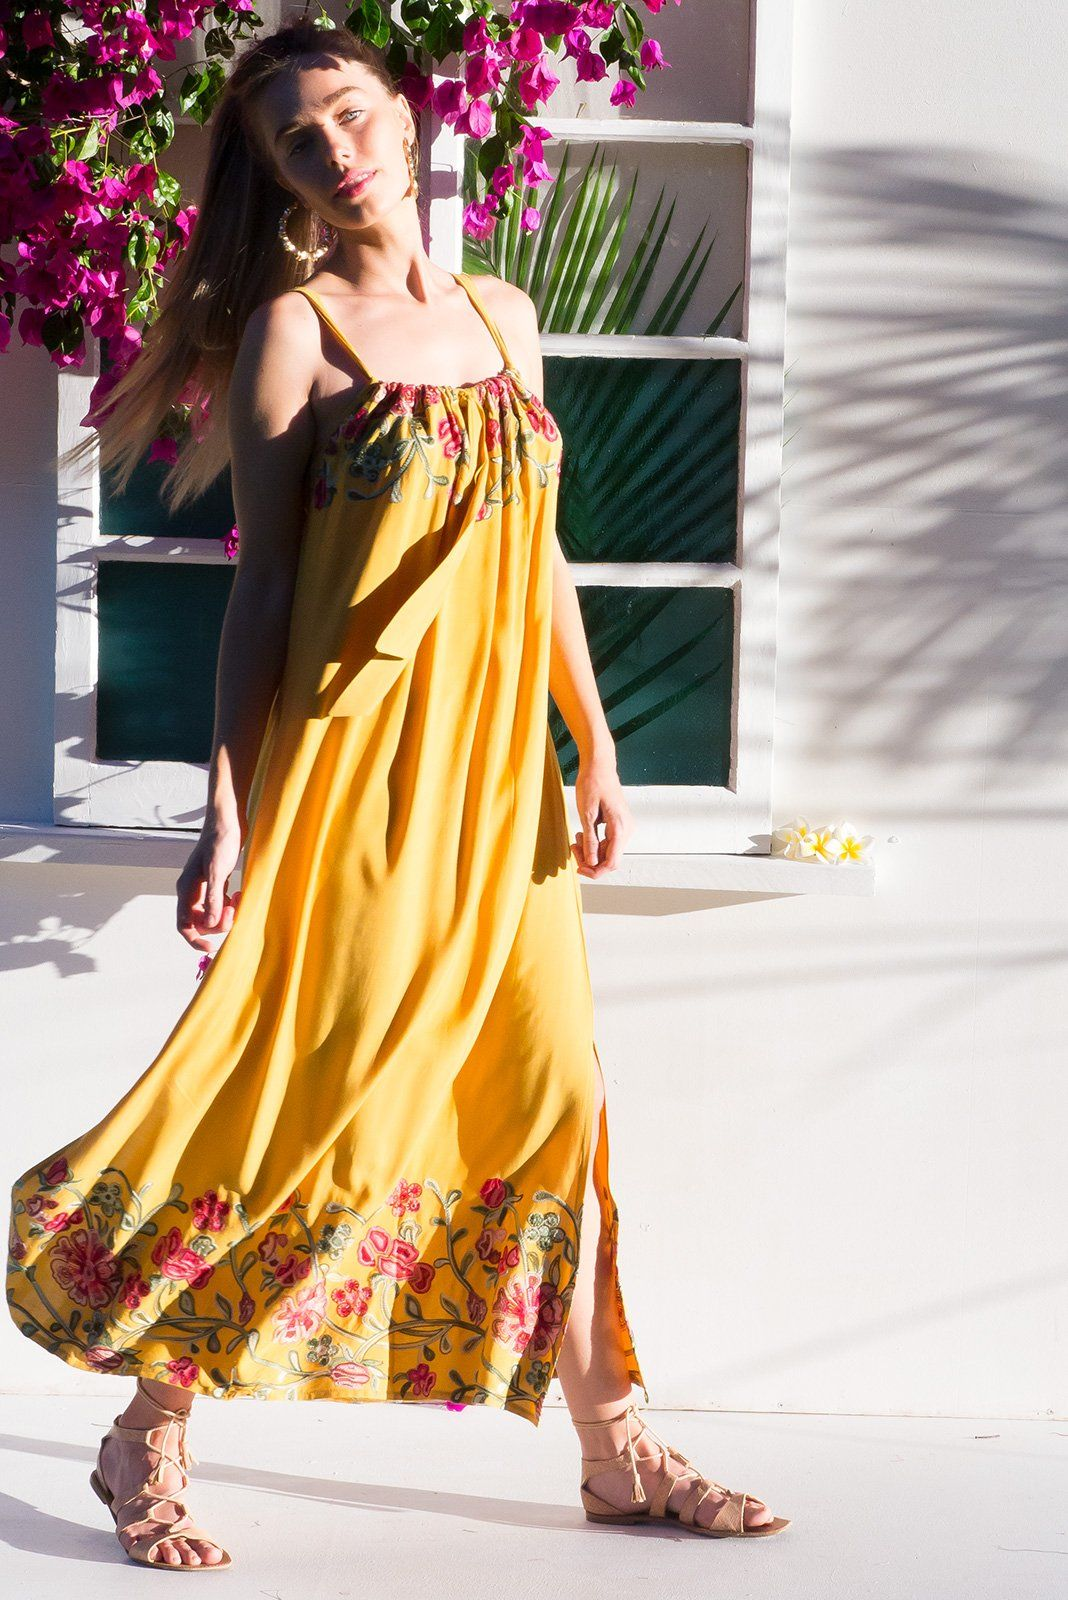 Island beach embroidered gold maxi dress tie up adjustable straps